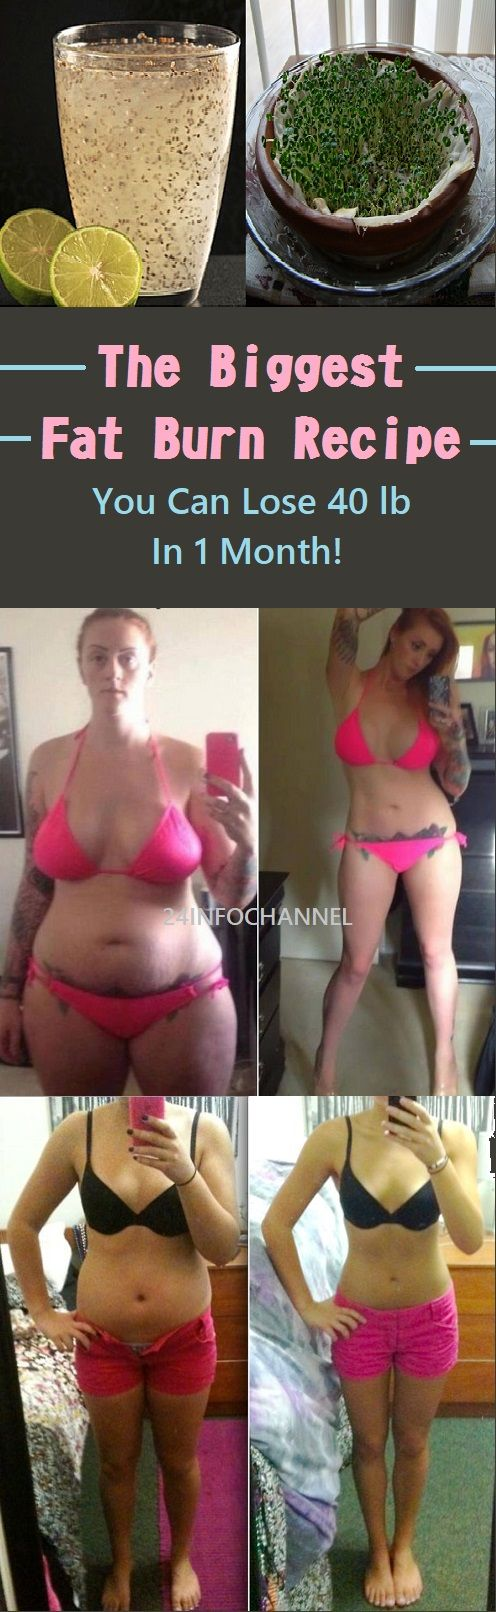 The Biggest Fat Burn Recipe! You Can Lose 40 Pound In 1 Month!